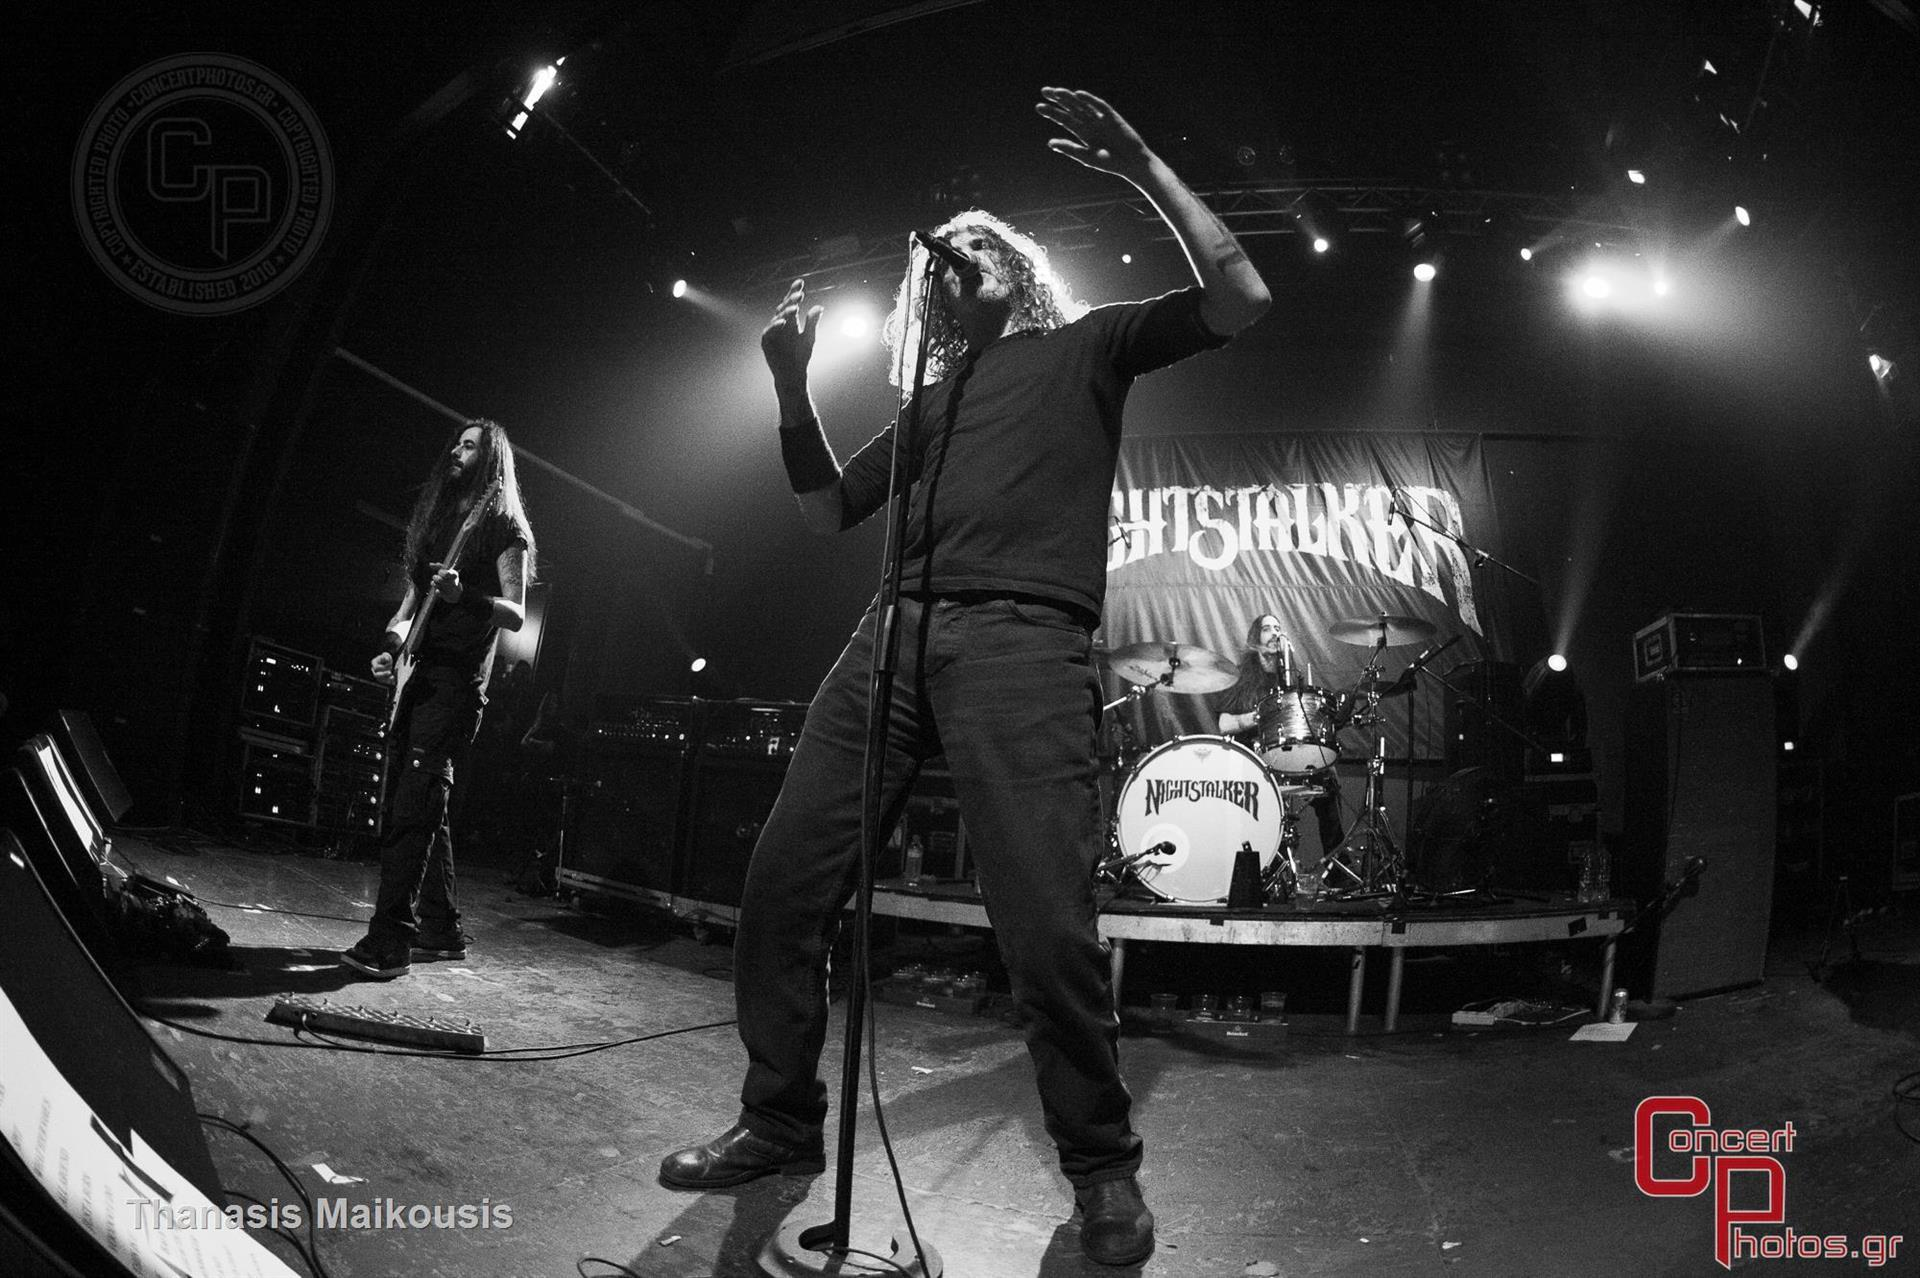 Nightstalker Three Holy Strangers-Nightstalker-Gagarin-April-2015 photographer: Thanasis Maikousis - ConcertPhotos - 20150425_2329_44